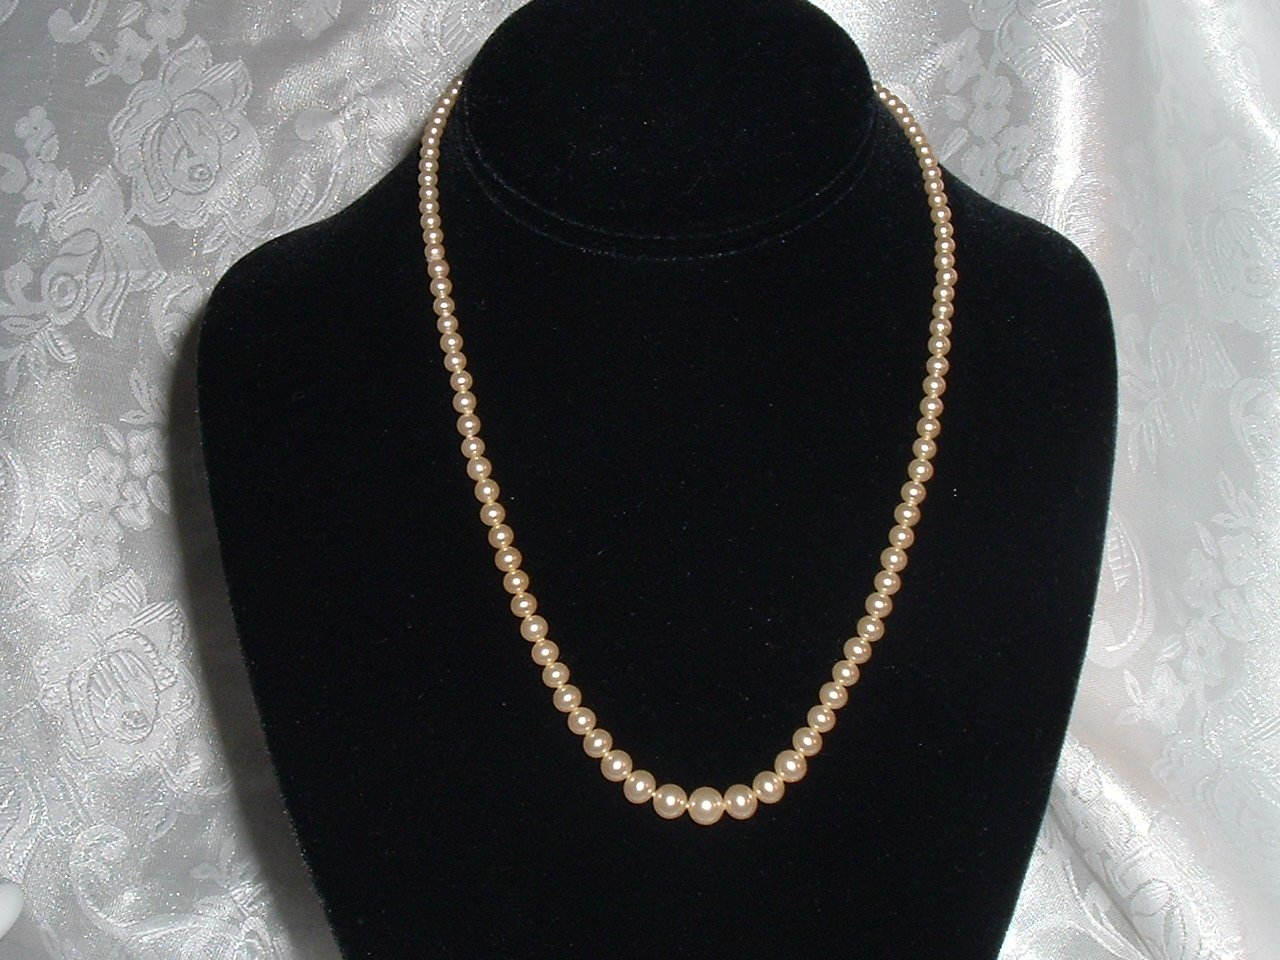 Vintage Faux Pearl & Rhinestone 17in. Necklace